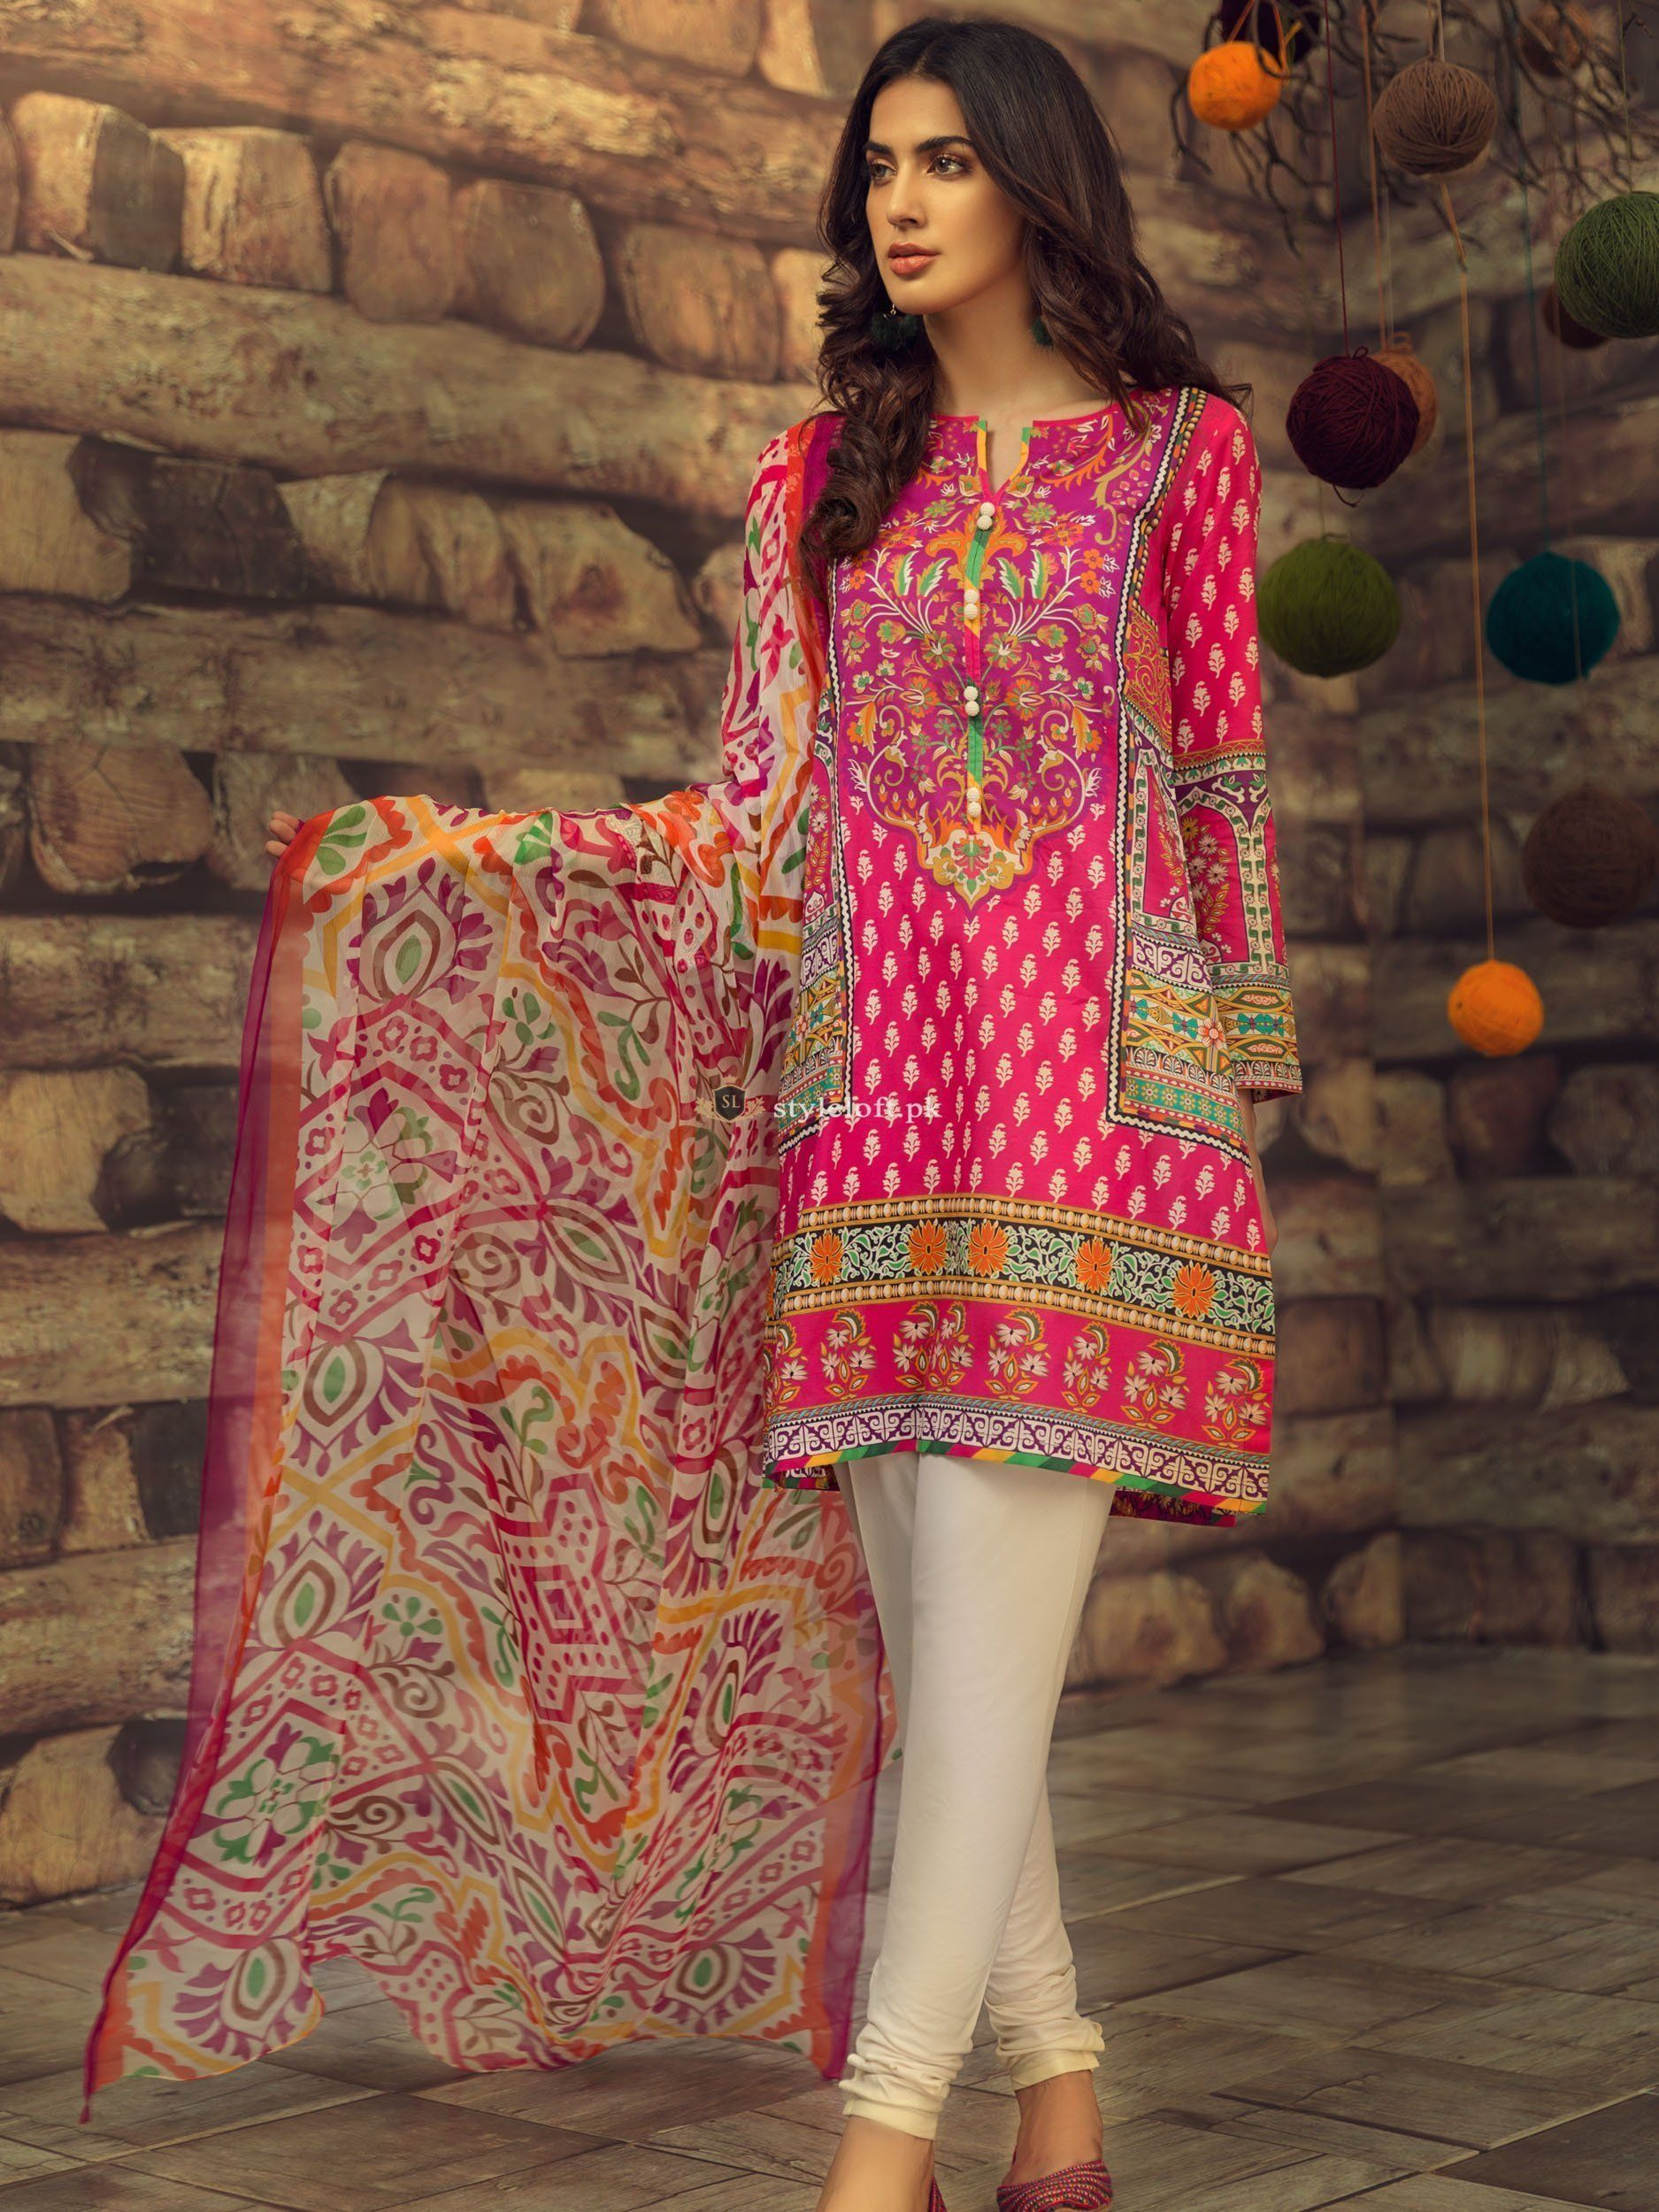 f39ff4dae5 Limelight Embroidered Lawn Unstitched 3 Piece Suit Folk-Magic #StyleLoft  #womensclothing #fashion2019